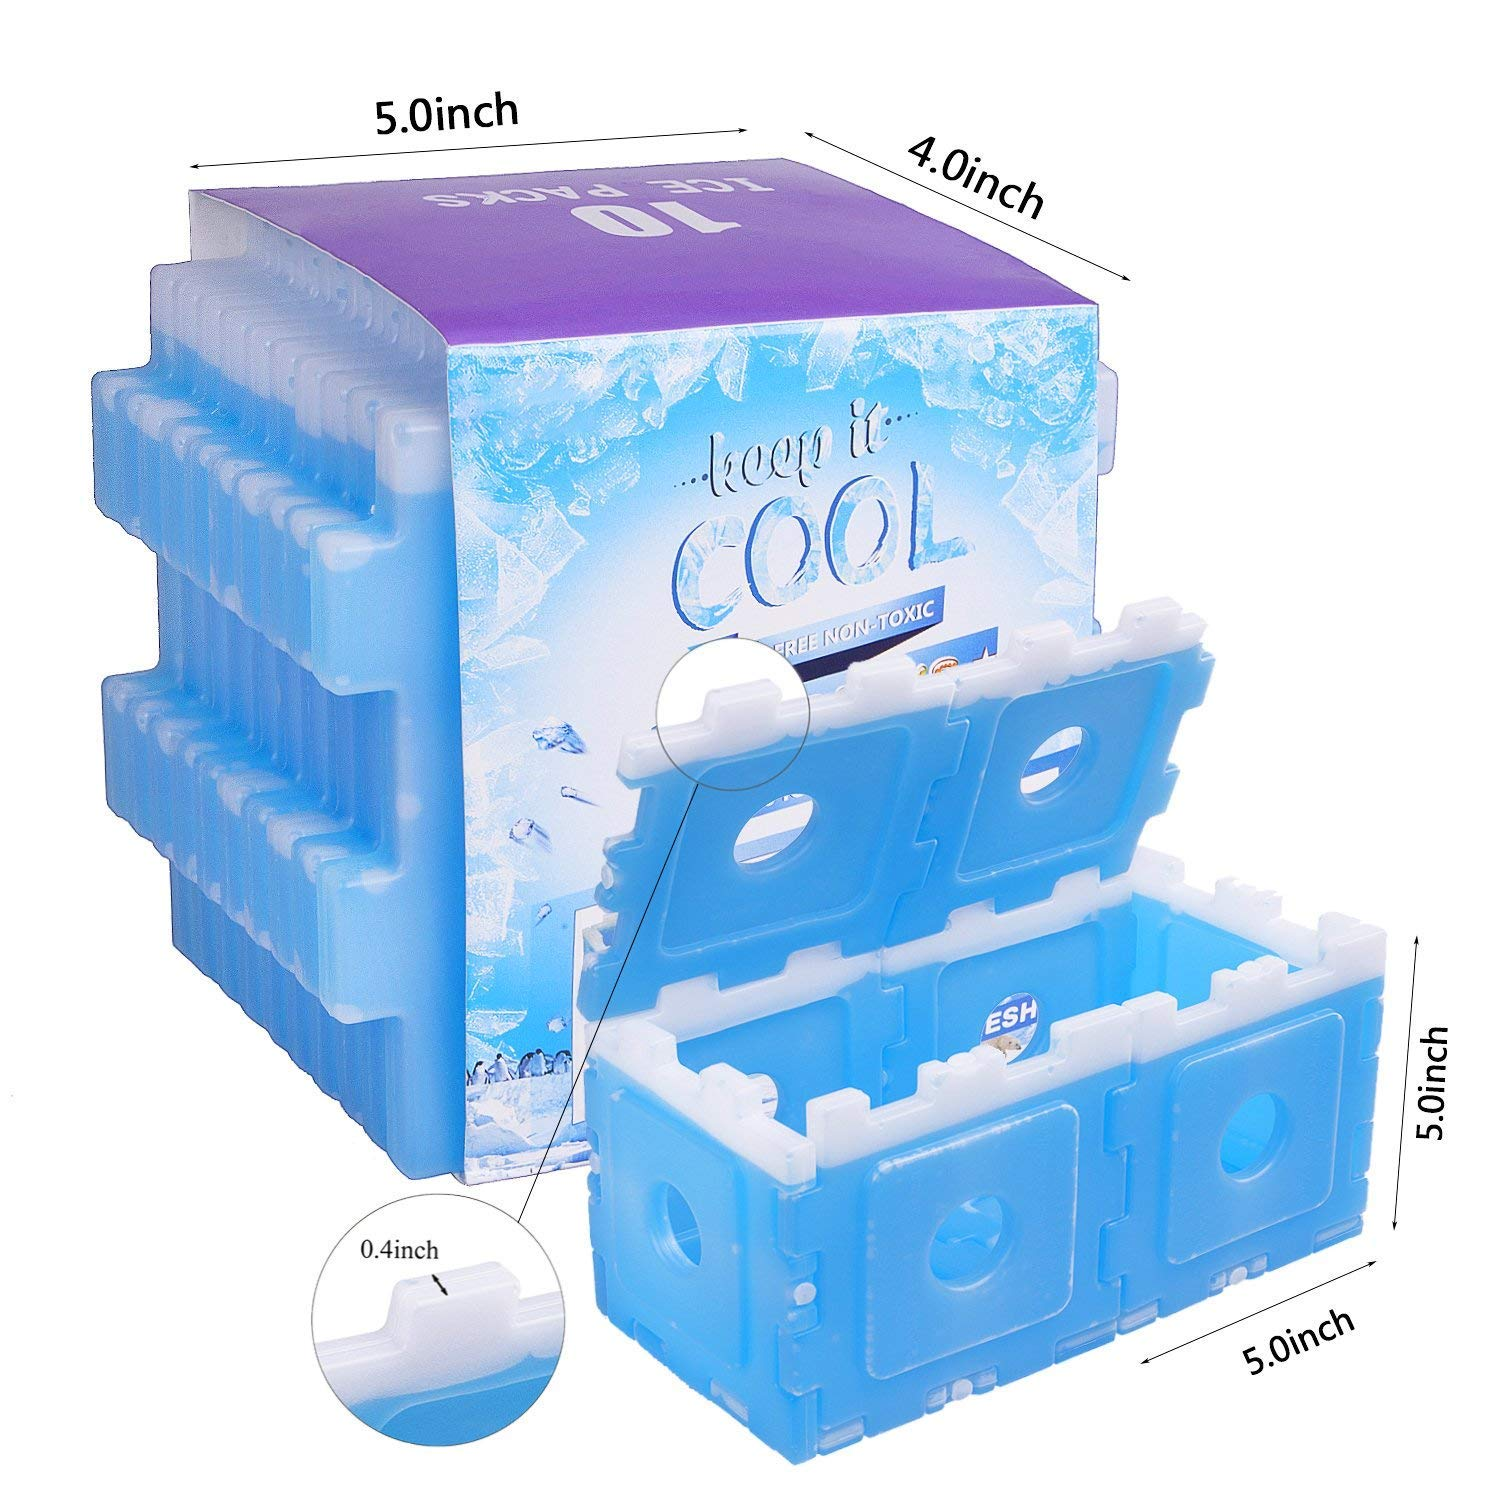 beyetori Ice Packs Cool Pack for Lunch Box,Freezer Packs for Lunch Bags and Coolers,Ice Pack Slim Reusable,Long-Lasting Freezer Ice Packs,Ice Packs-Great for Coolers,Ice Cube Blue